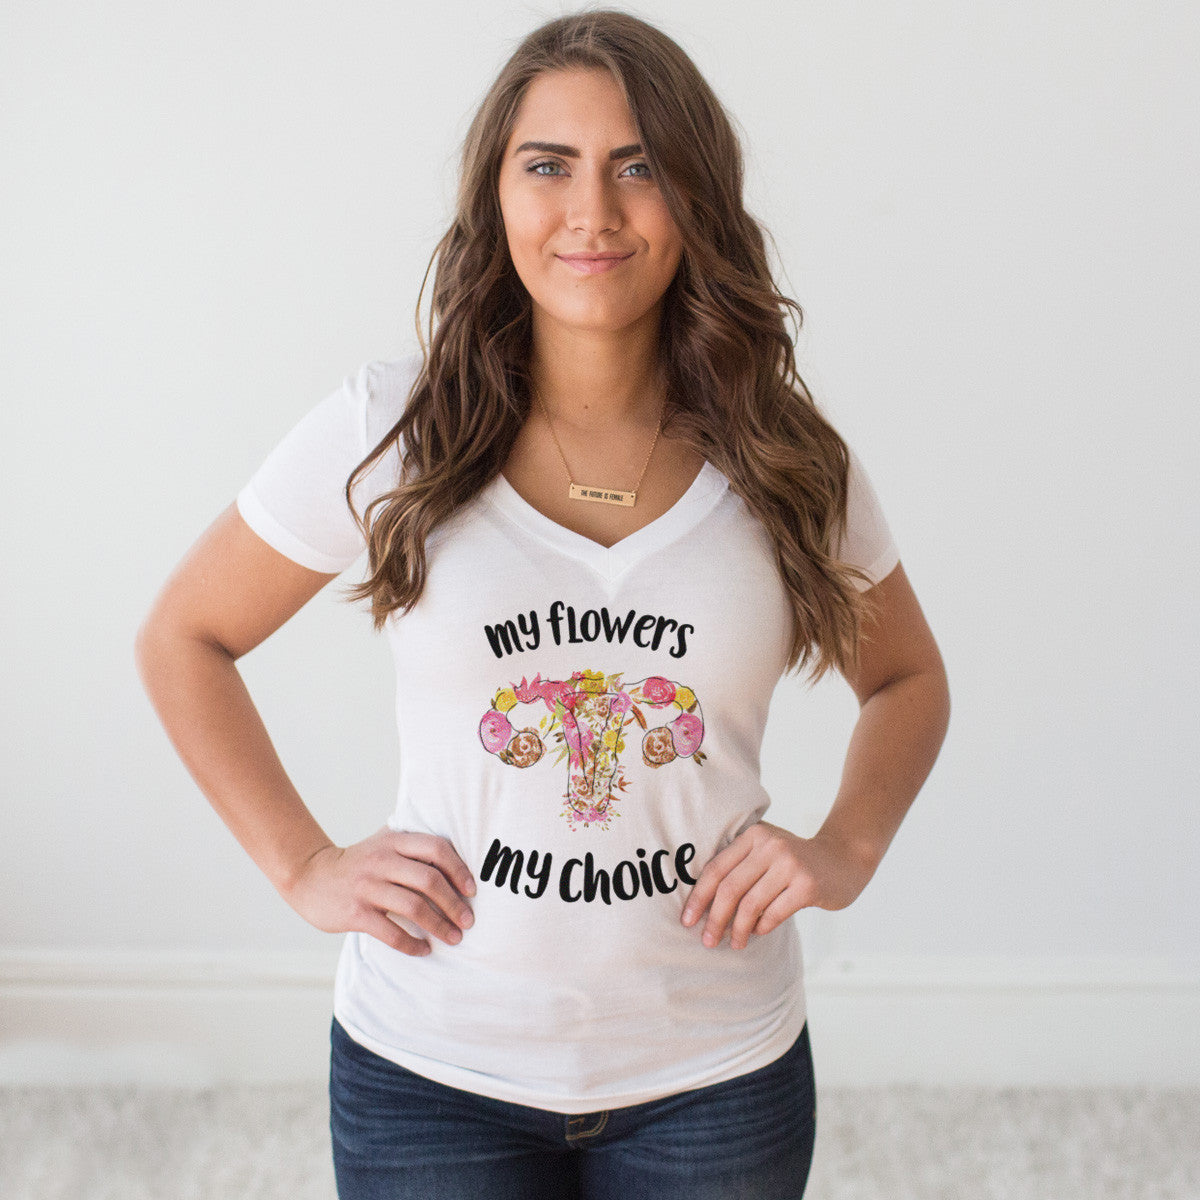 My Flowers My Choice V-Neck T-Shirt - pipercleo.com